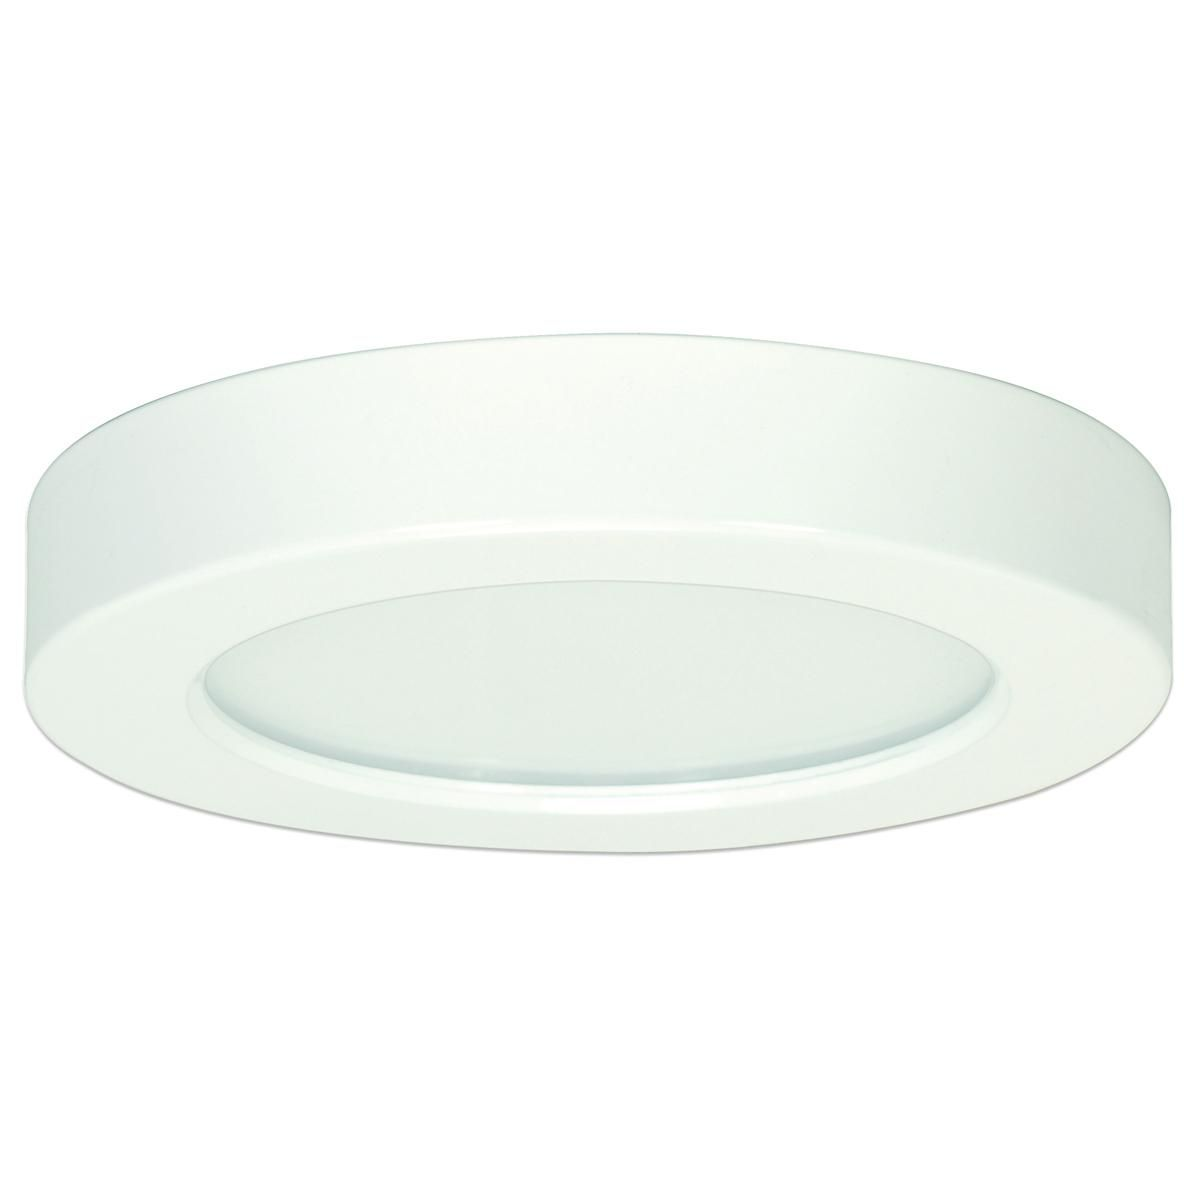 5 5 Led Simple Round Low Profile Ceiling Light Ceiling Lights Flush Mount Lighting Semi Flush Ceiling Lights